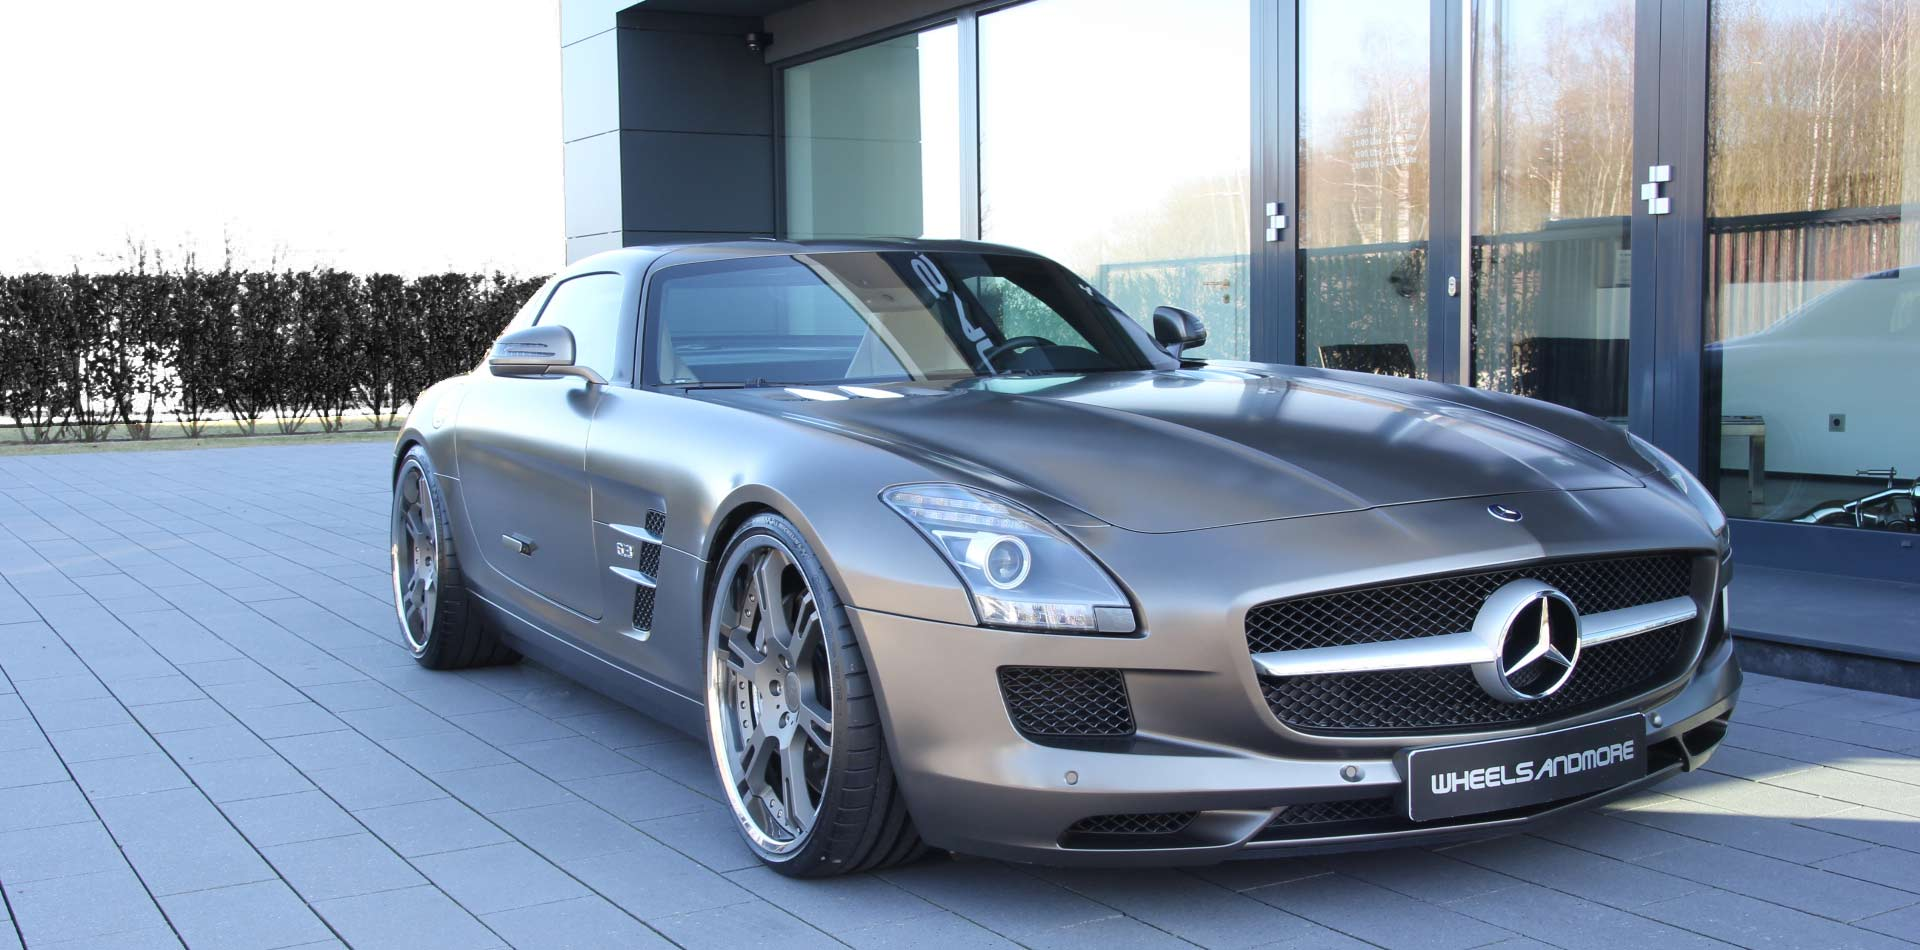 3 Teilige Felgen Mercedes Sls Amg Tuning And Felgen Wheelsandmore